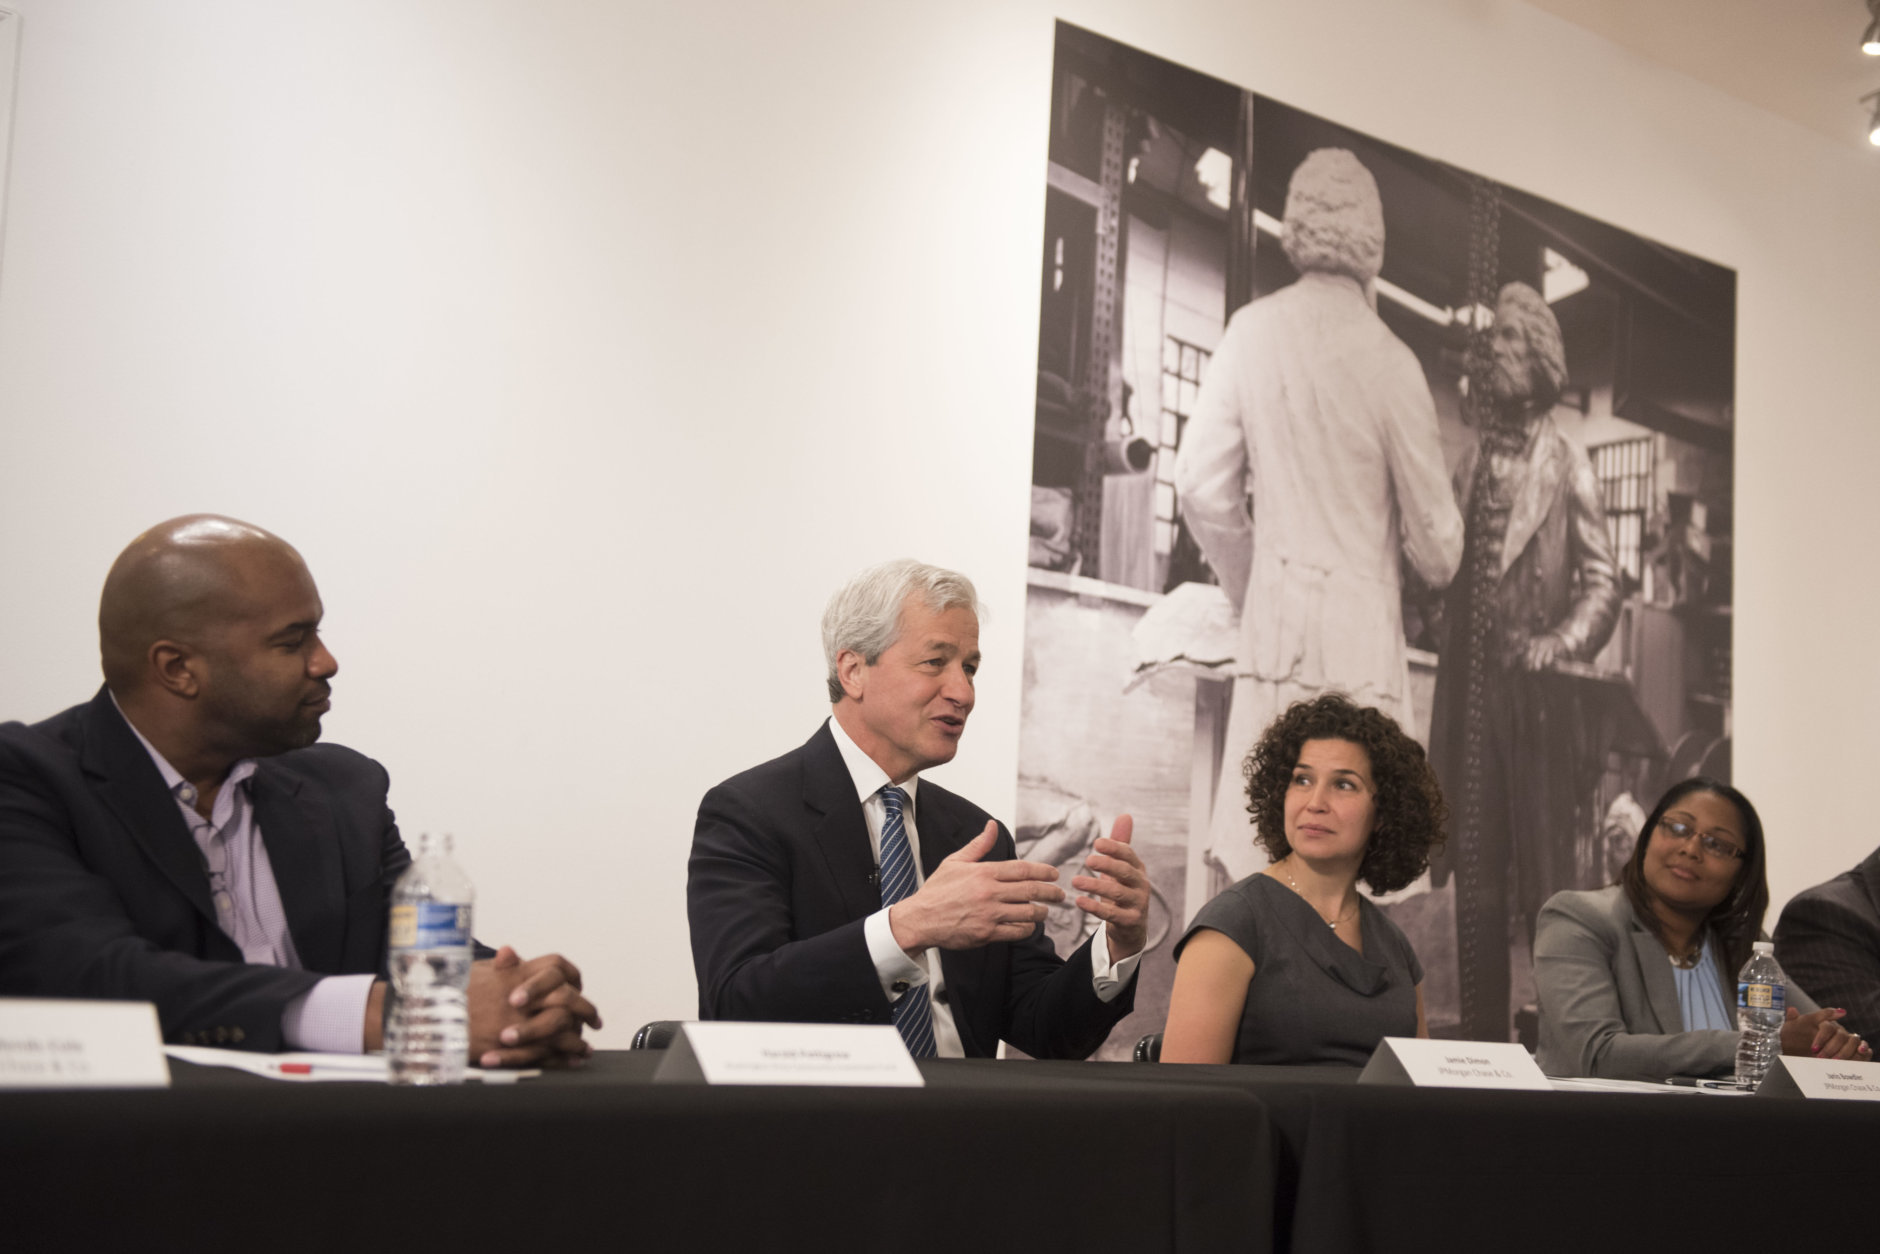 IMAGE DISTRIBUTED FOR JPMORGAN CHASE & CO. - JPMorgan Chase & Co. Chairman and CEO Jamie Dimon speaks at a Community Roundtable/Meet and Greet at the Anacostia Arts Center on Wednesday, April 18, 2018 in Washington. (Kevin Wolf/AP Images for JPMorgan Chase & Co.)